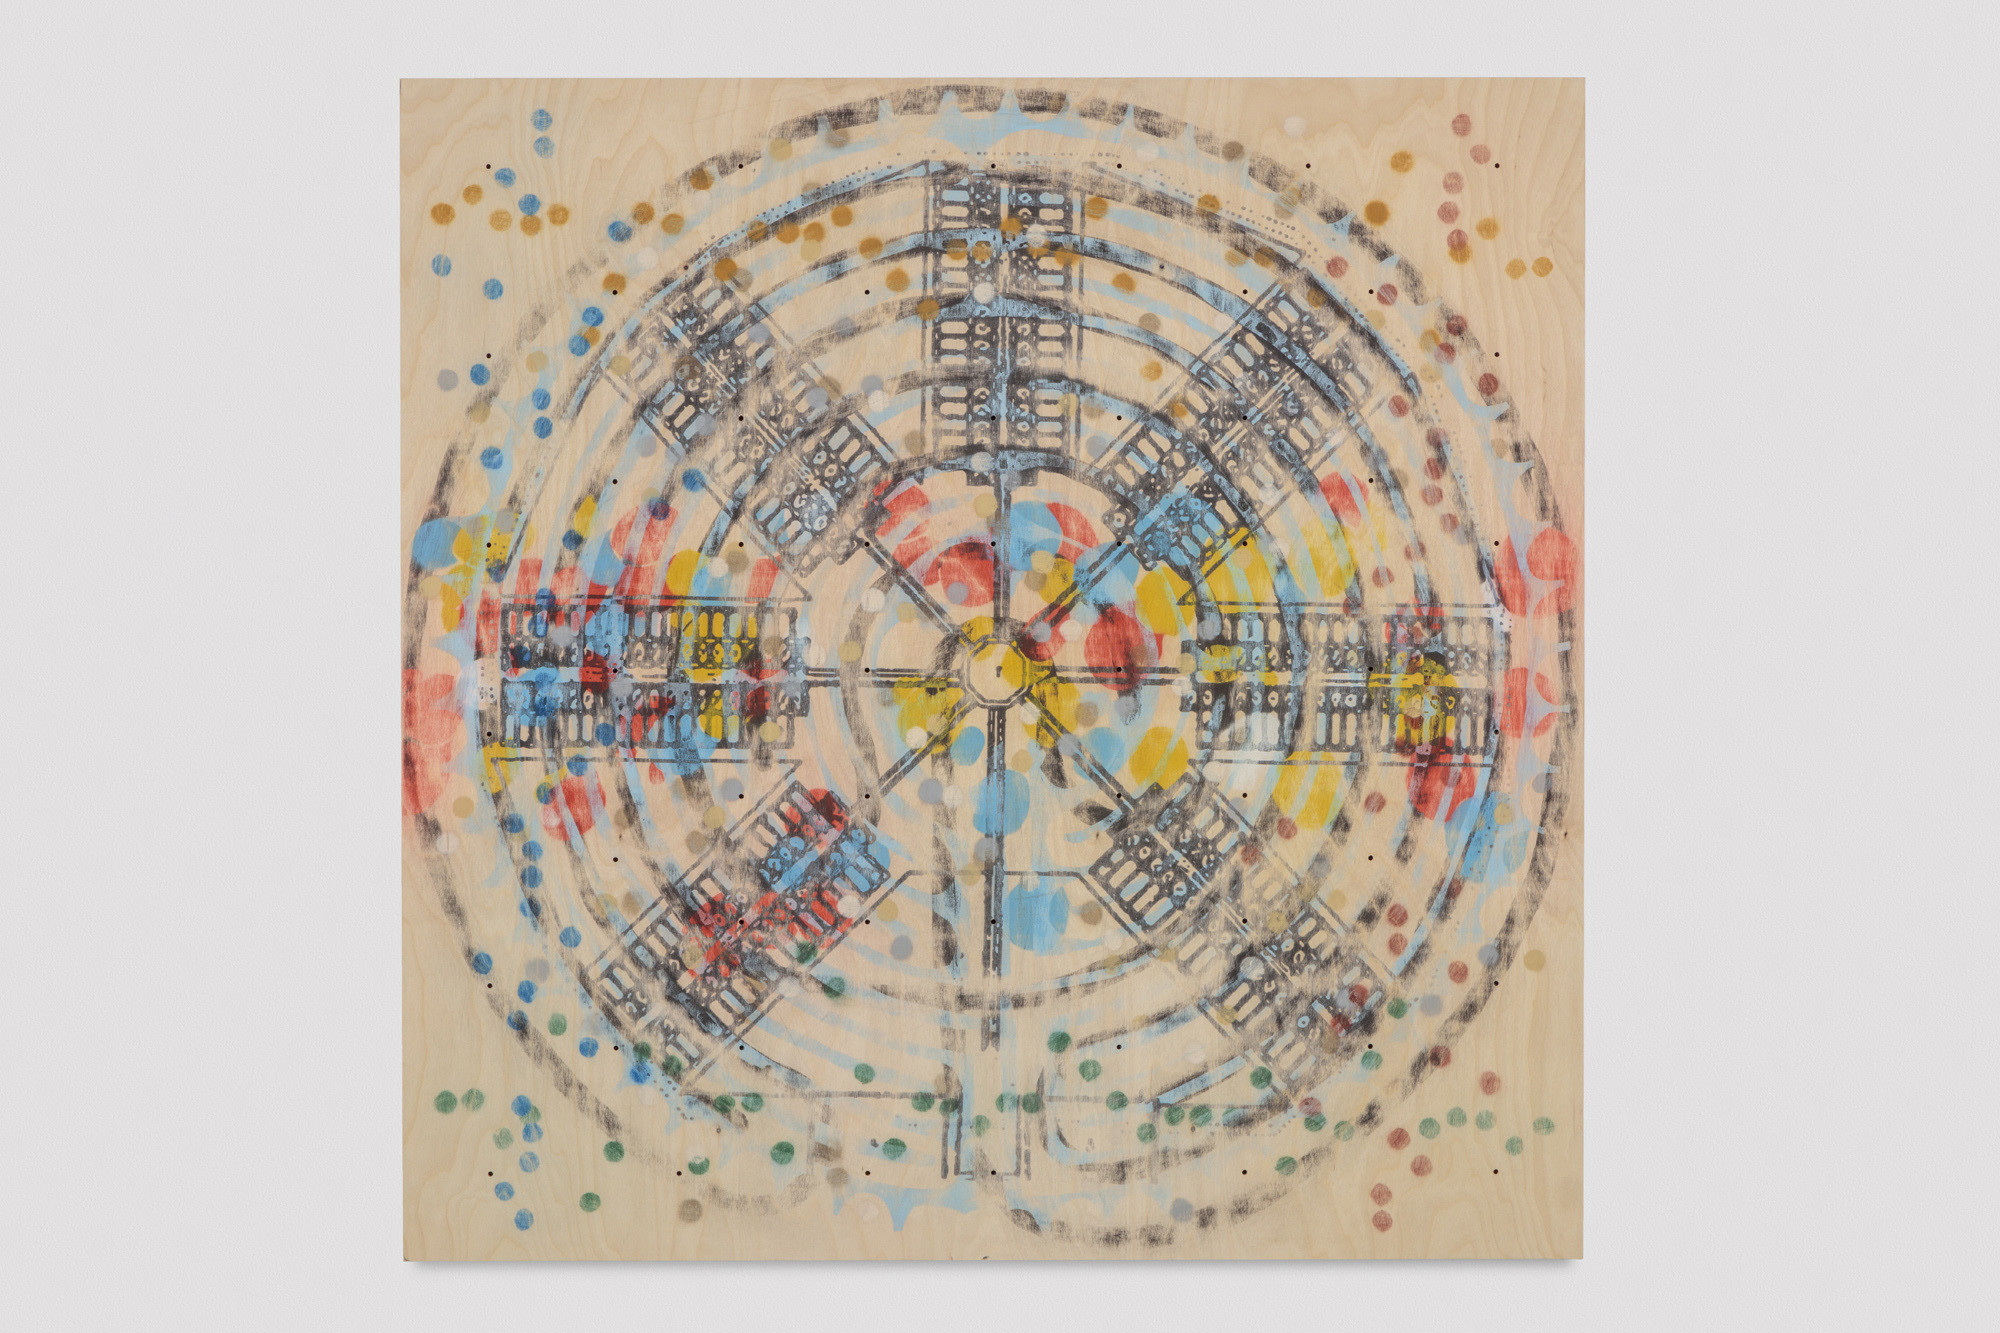 "<div class=""title""><em>Prison Memorial Labyrinth Complex</em>, 2016</div><div class=""signed_and_dated"">signed and dated on verso</div><div class=""medium"">metal, digital print on birch plywood</div><div class=""dimensions"">119.5 x 119.5 x 2.5 cm<br />47 x 47 x 1 in.</div>"